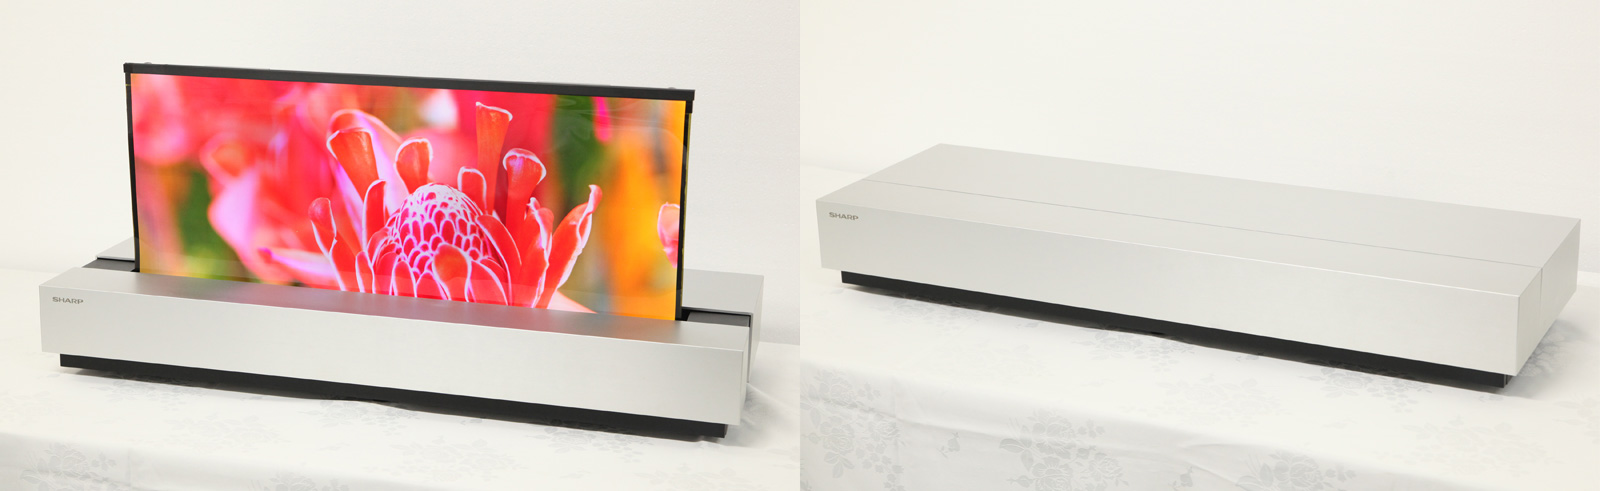 Sharp unveils a rollable 30-inch 4K OLED TV